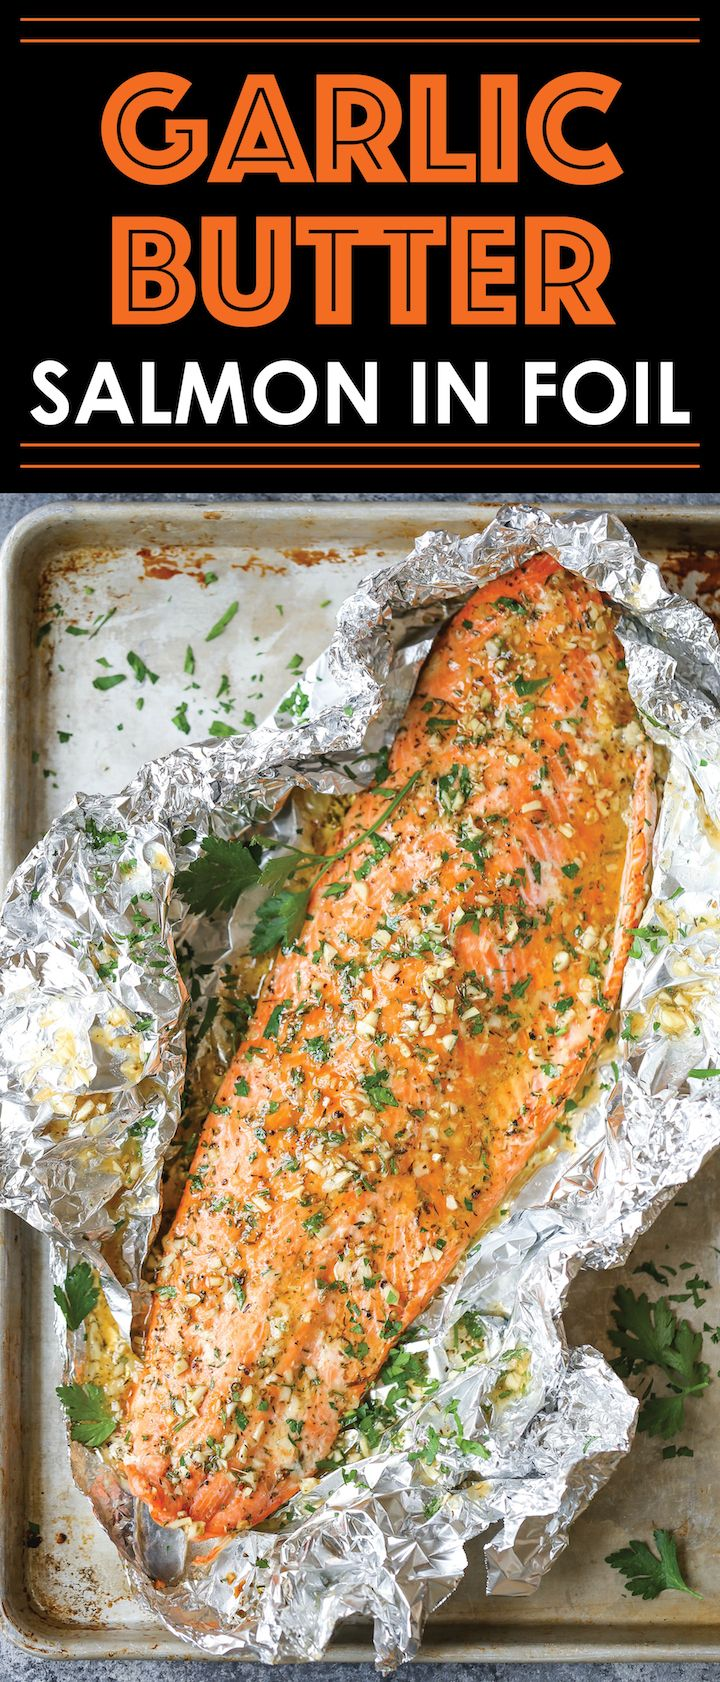 Quick easy fish dinner recipes